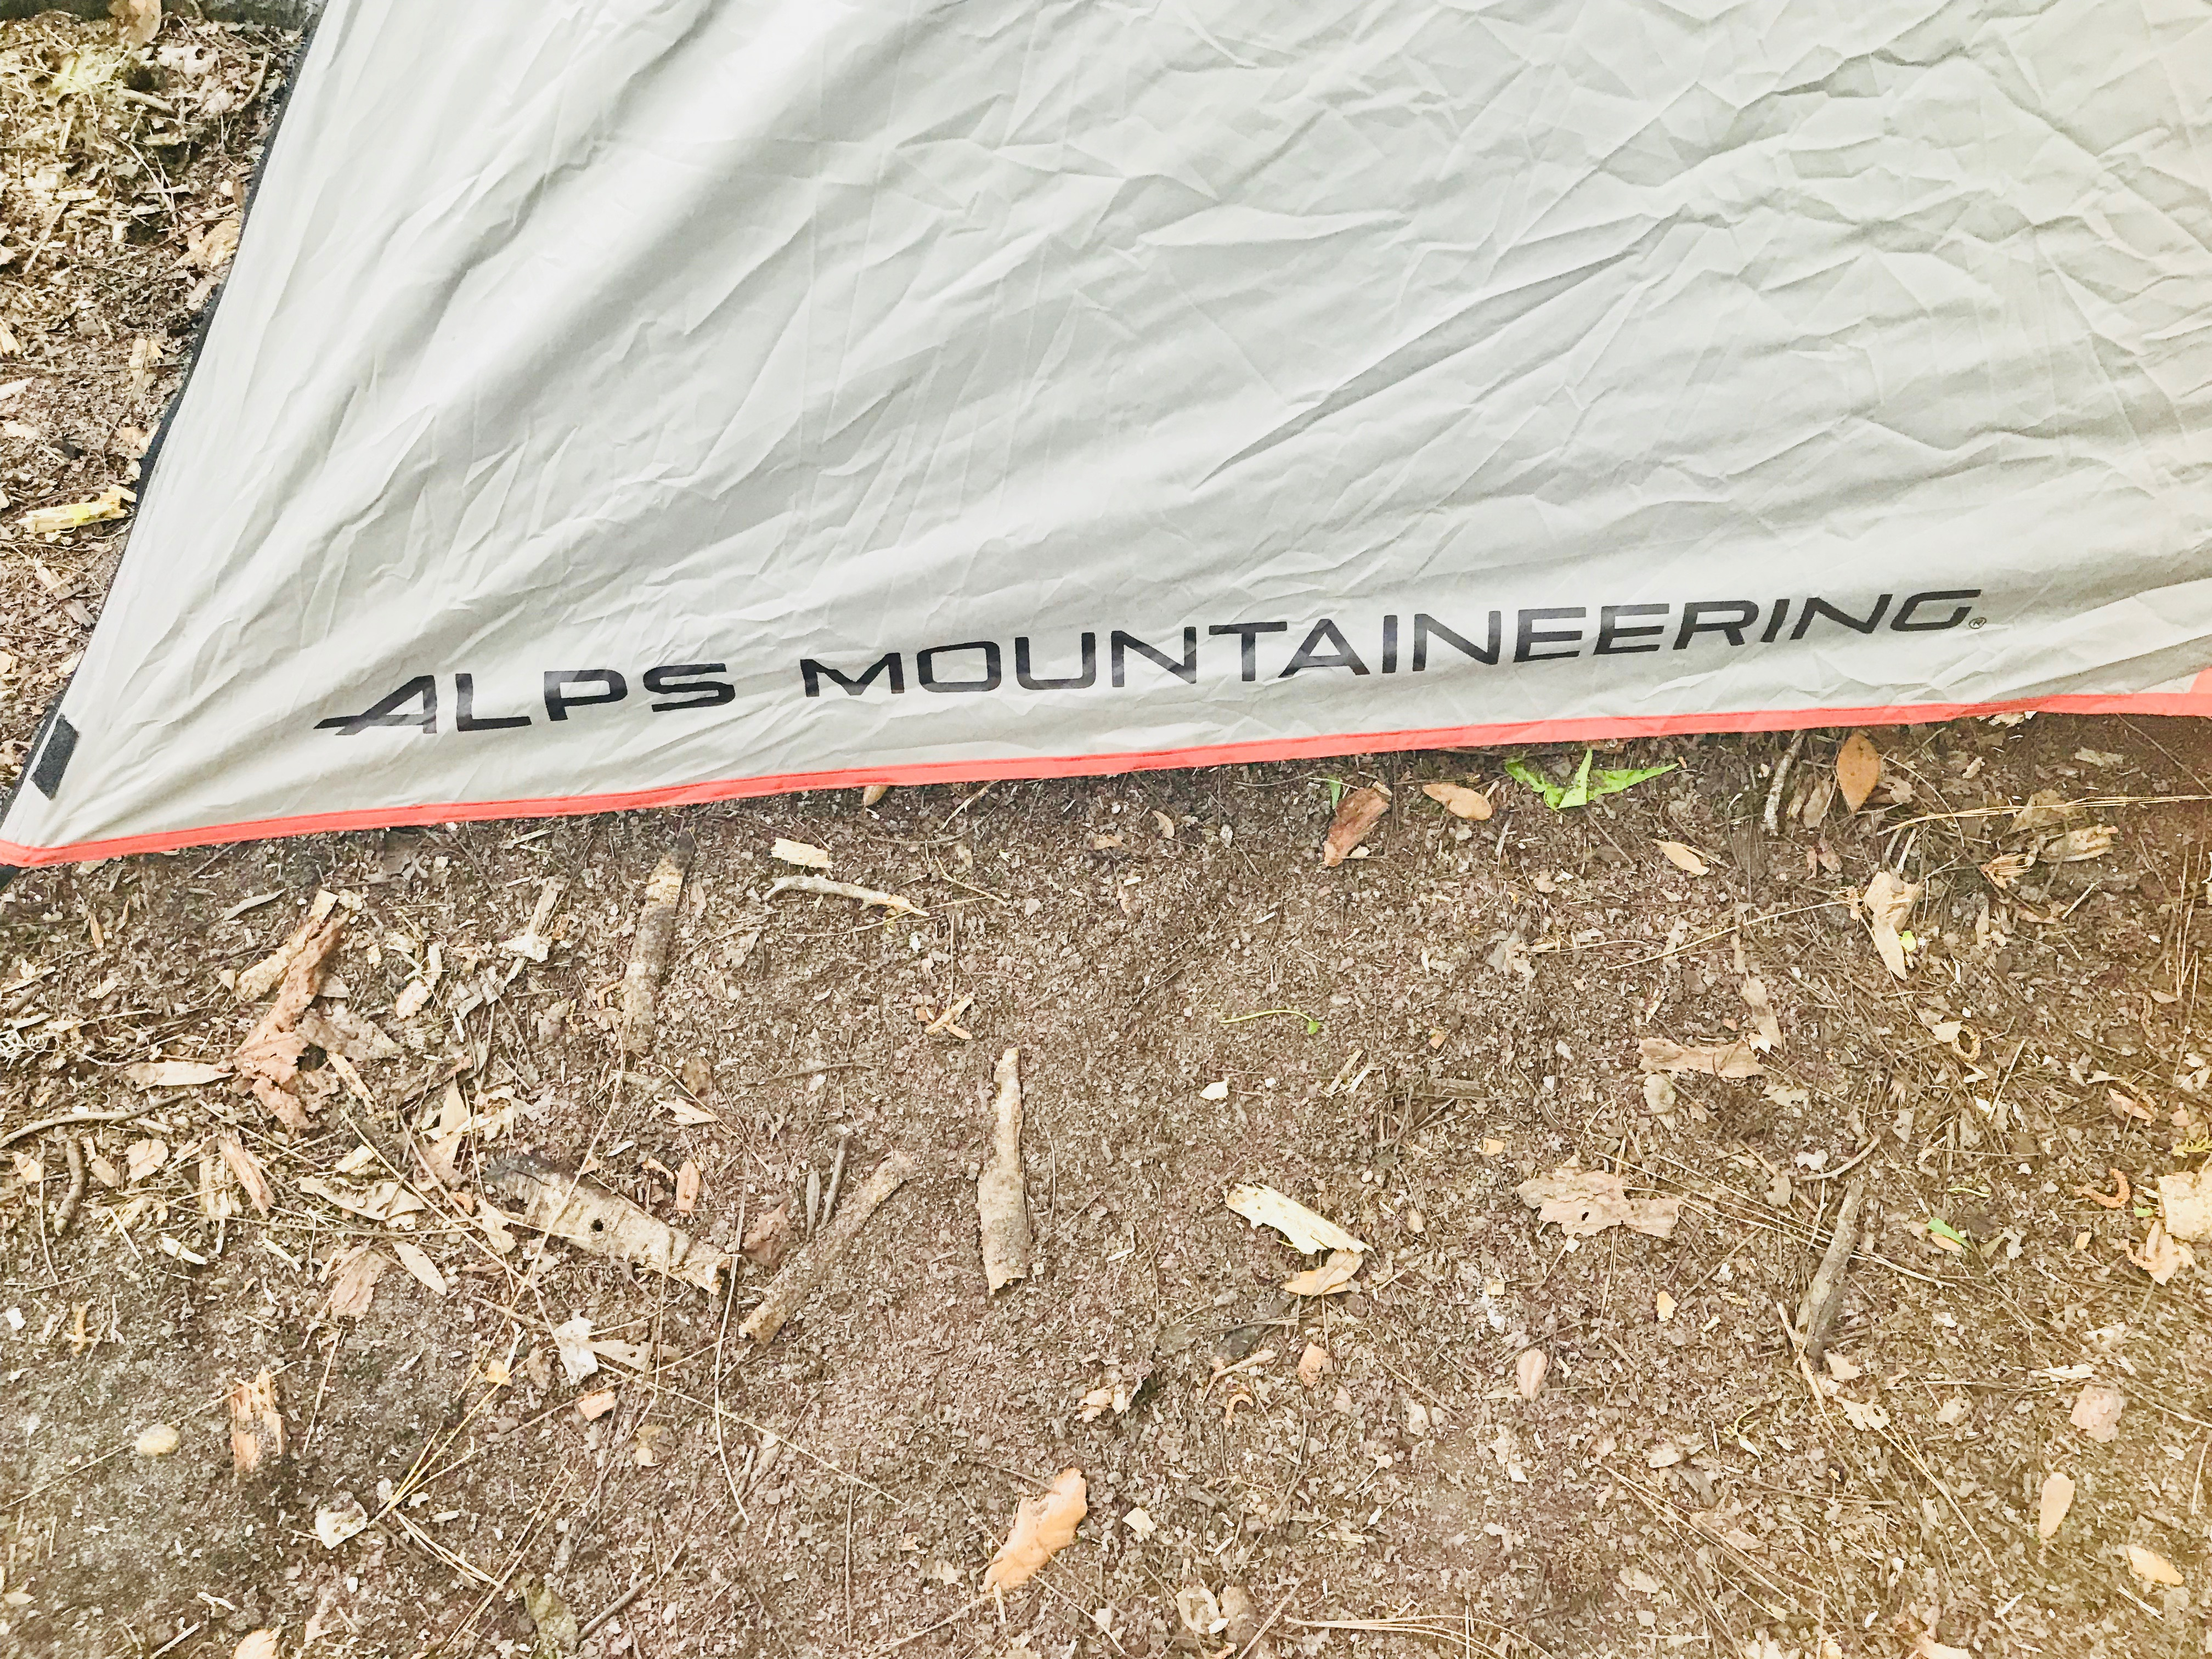 On a recent c&ing trip I had the opportunity to use a new tent. It was the Lynx 2 two man tent manufactured by Alps Mountaineering. & The Casual Outdoorsman Reviews the Lynx 2 Tent by Alps ...